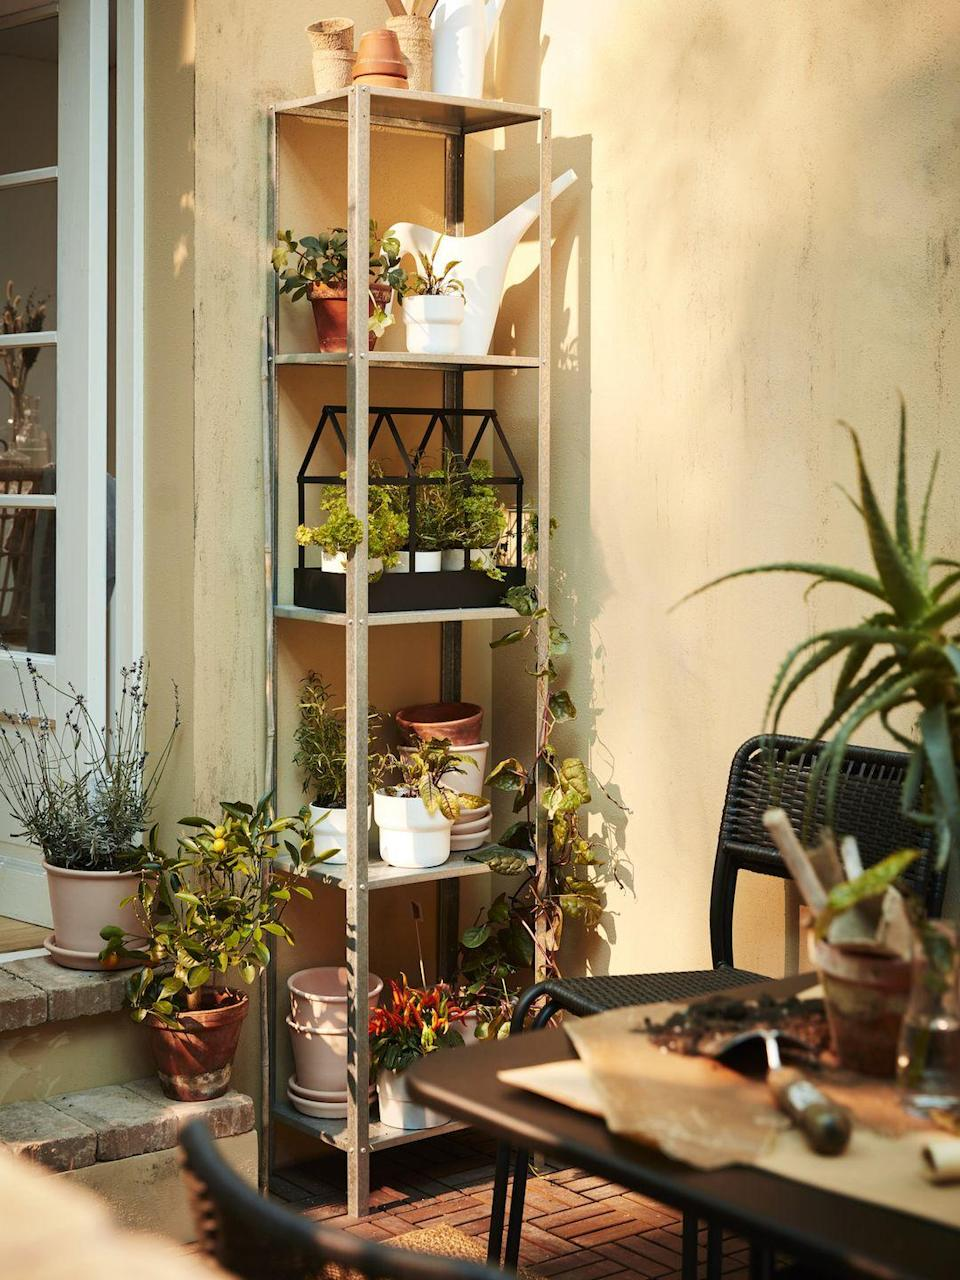 """<p><a href=""""https://www.housebeautiful.com/uk/garden/designs/how-to/a781/balcony-garden-guide/"""" rel=""""nofollow noopener"""" target=""""_blank"""" data-ylk=""""slk:Balcony gardens"""" class=""""link rapid-noclick-resp"""">Balcony gardens</a> were all the rage on Instagram last year, with more households transforming small spaces into urban jungles. </p><p>'Limited space shouldn't be a hinderance when creating your personal oasis, playing with storage solutions with different heights will help maximise what you have available. </p><p>'For example, the HYLLIS shelving unit is sturdy and lightweight. Simply stack pots of different sizes and fill them with your favourite herbs, flowers and plants to create a lush, zen spot.'</p>"""